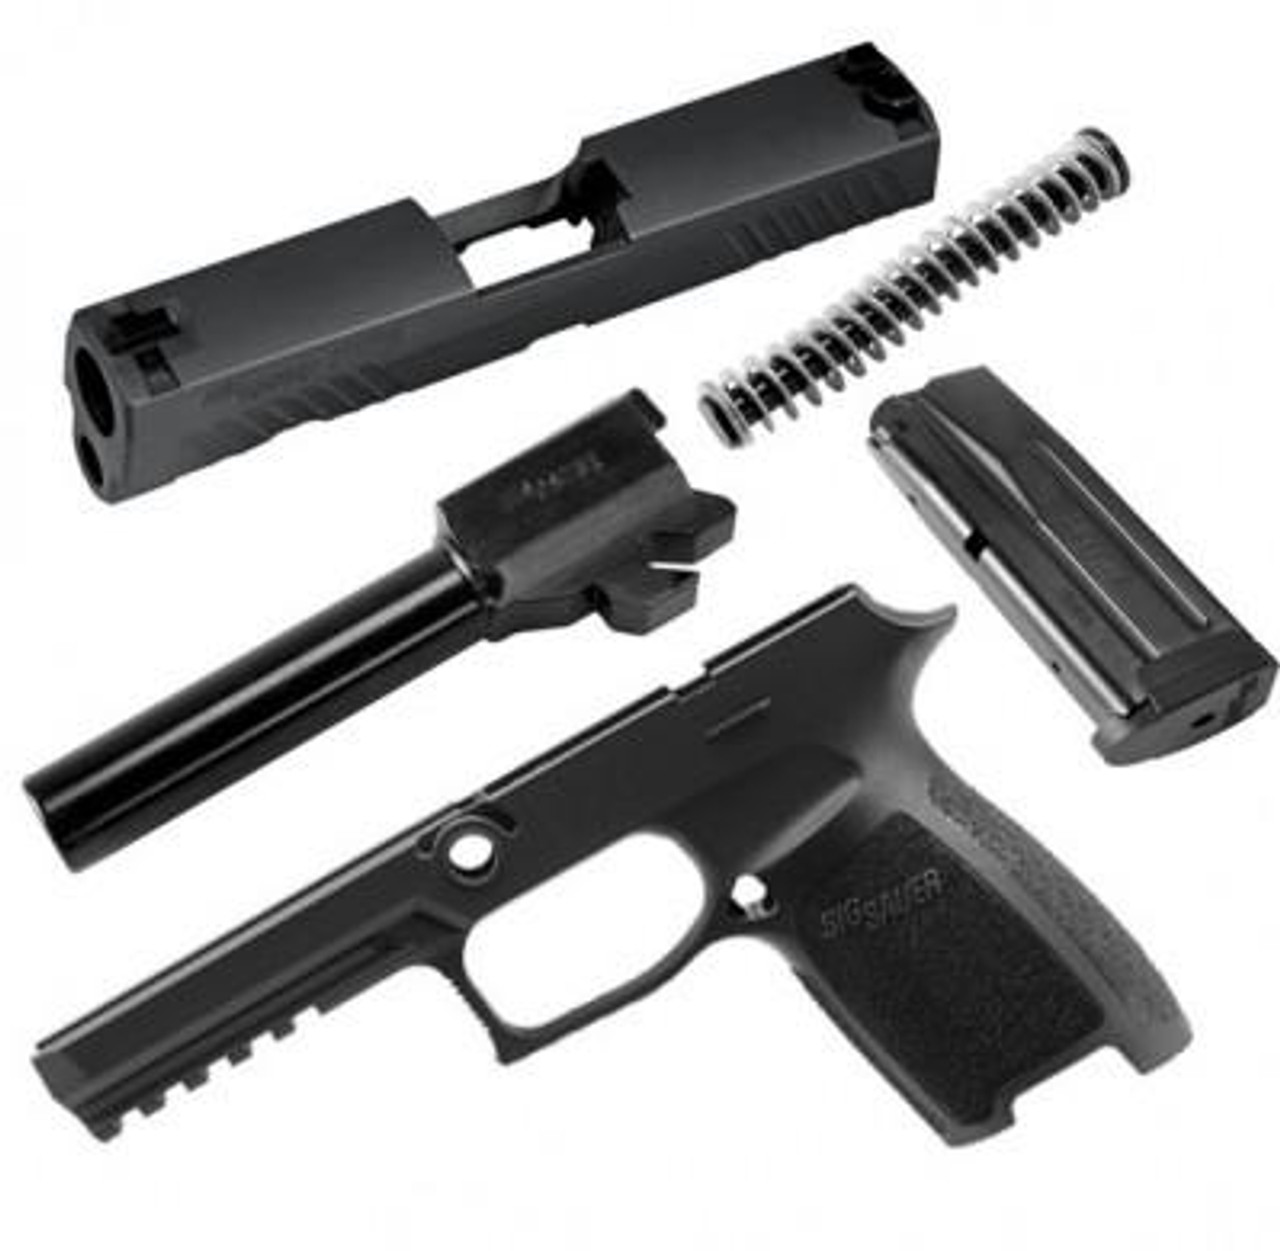 Sig Sauer P320 Caliber X Change Kit - Full Size